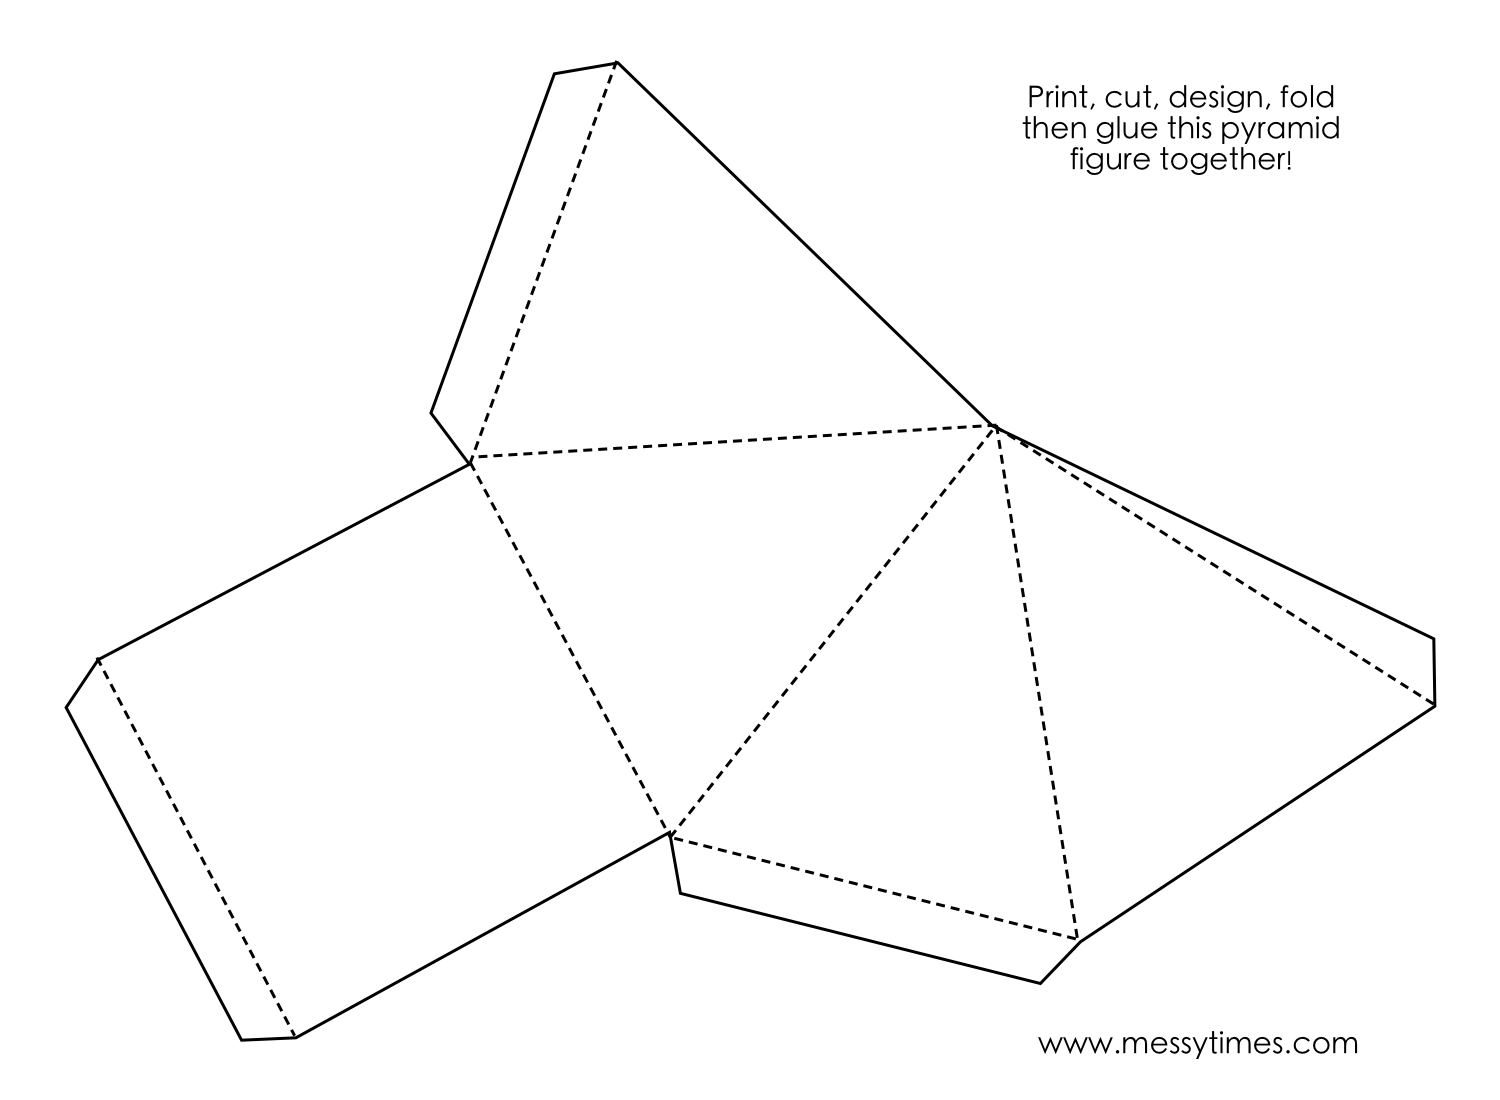 A 3D pyramid object to cut, design, fold and glue together ... - photo#17